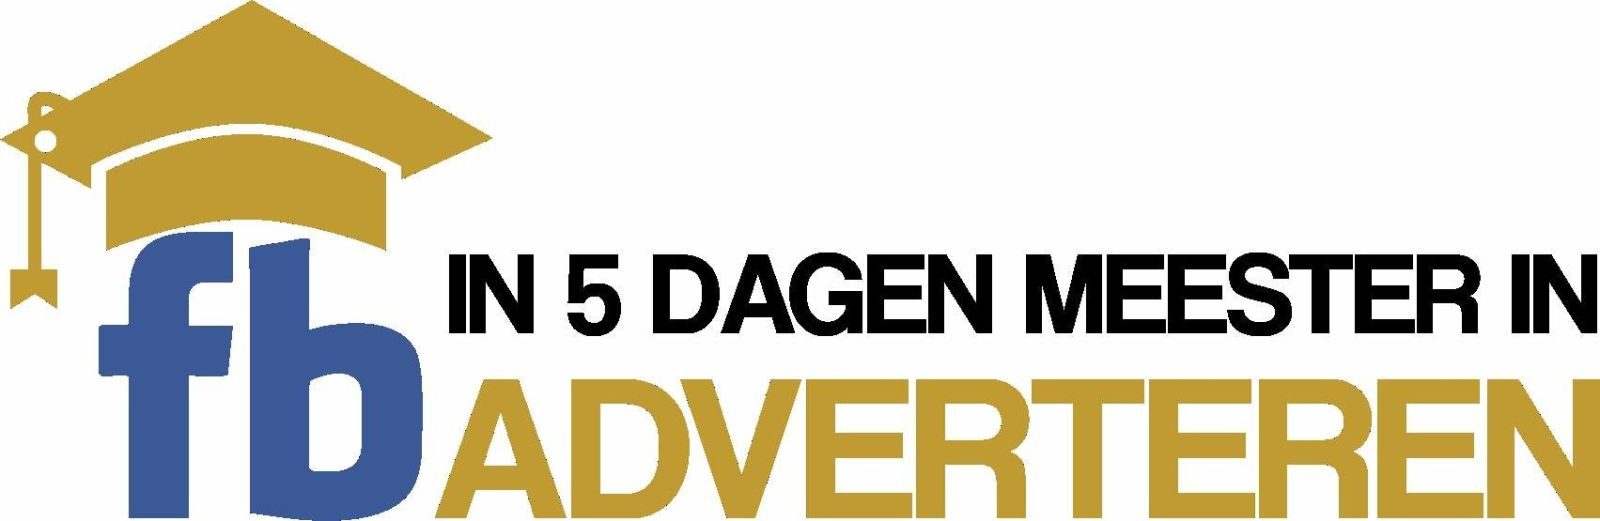 in 5 dagen meester in Facebook adverteren